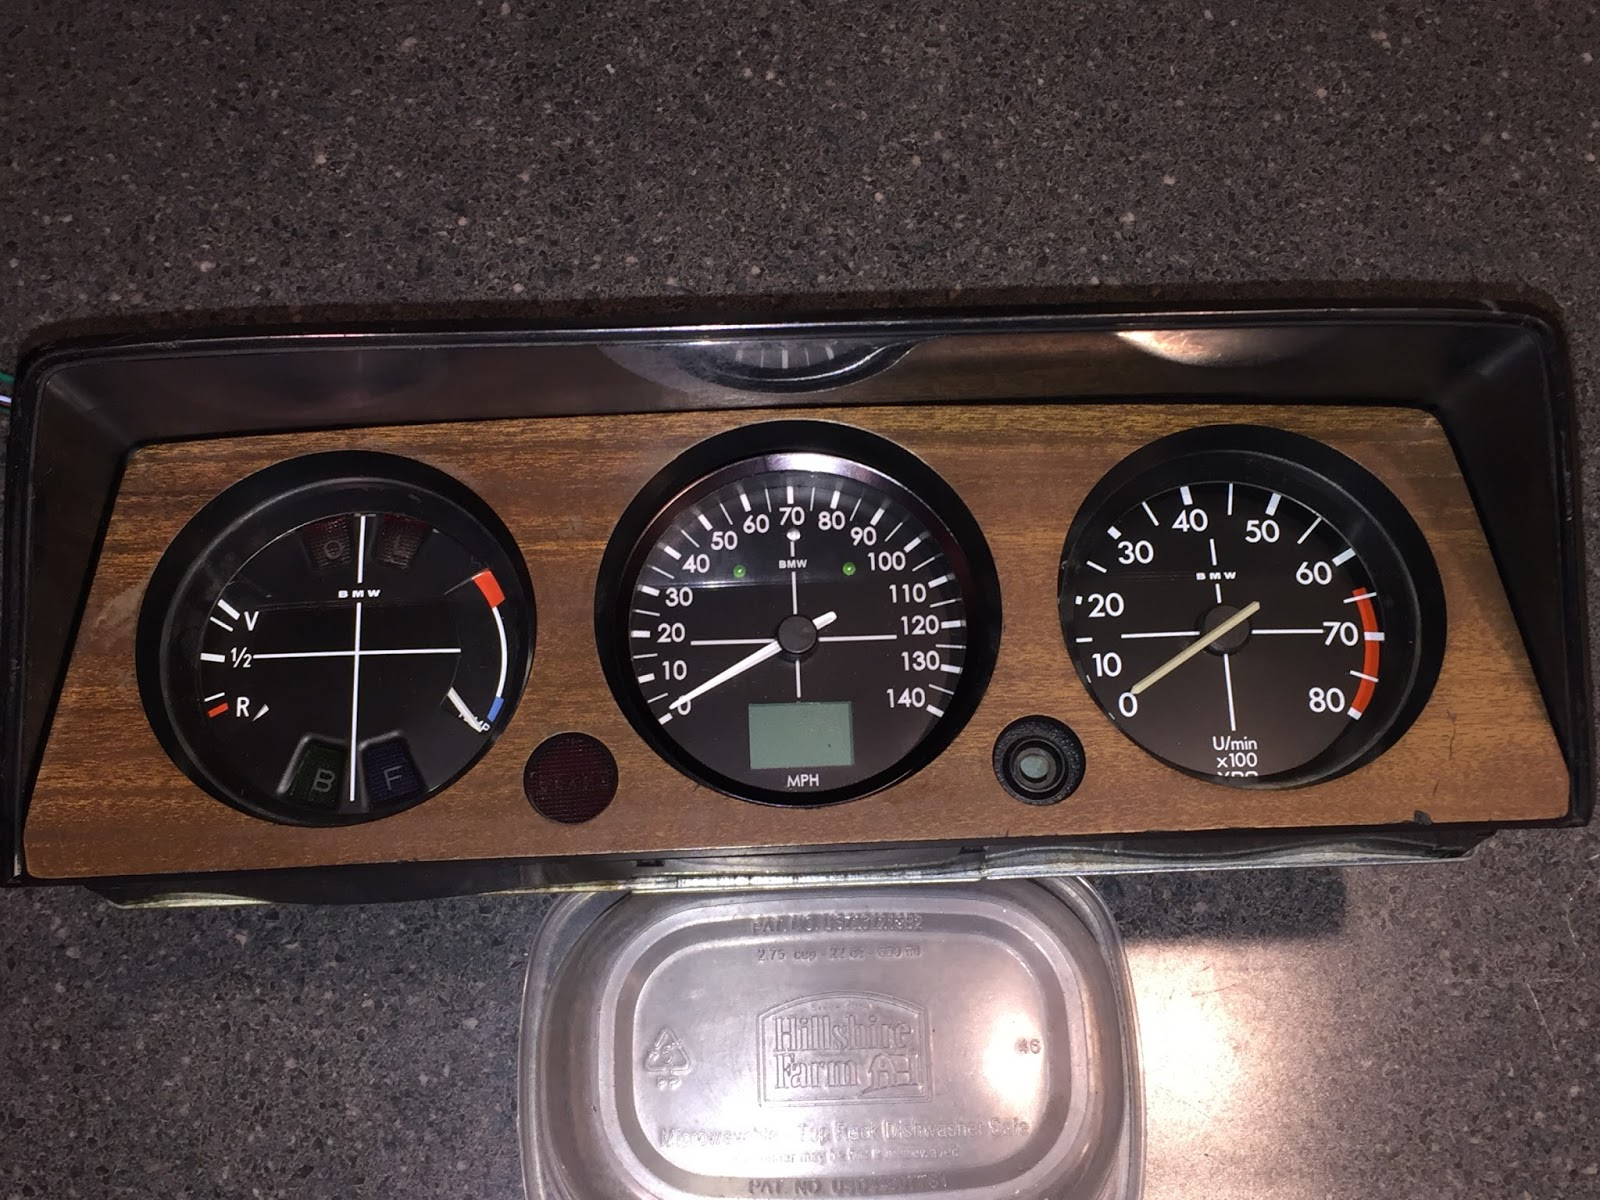 small resolution of i m very happy with the look once installed the custom gauge face is nearly a perfect match if only the bmw lettering was spaced a little wider apart